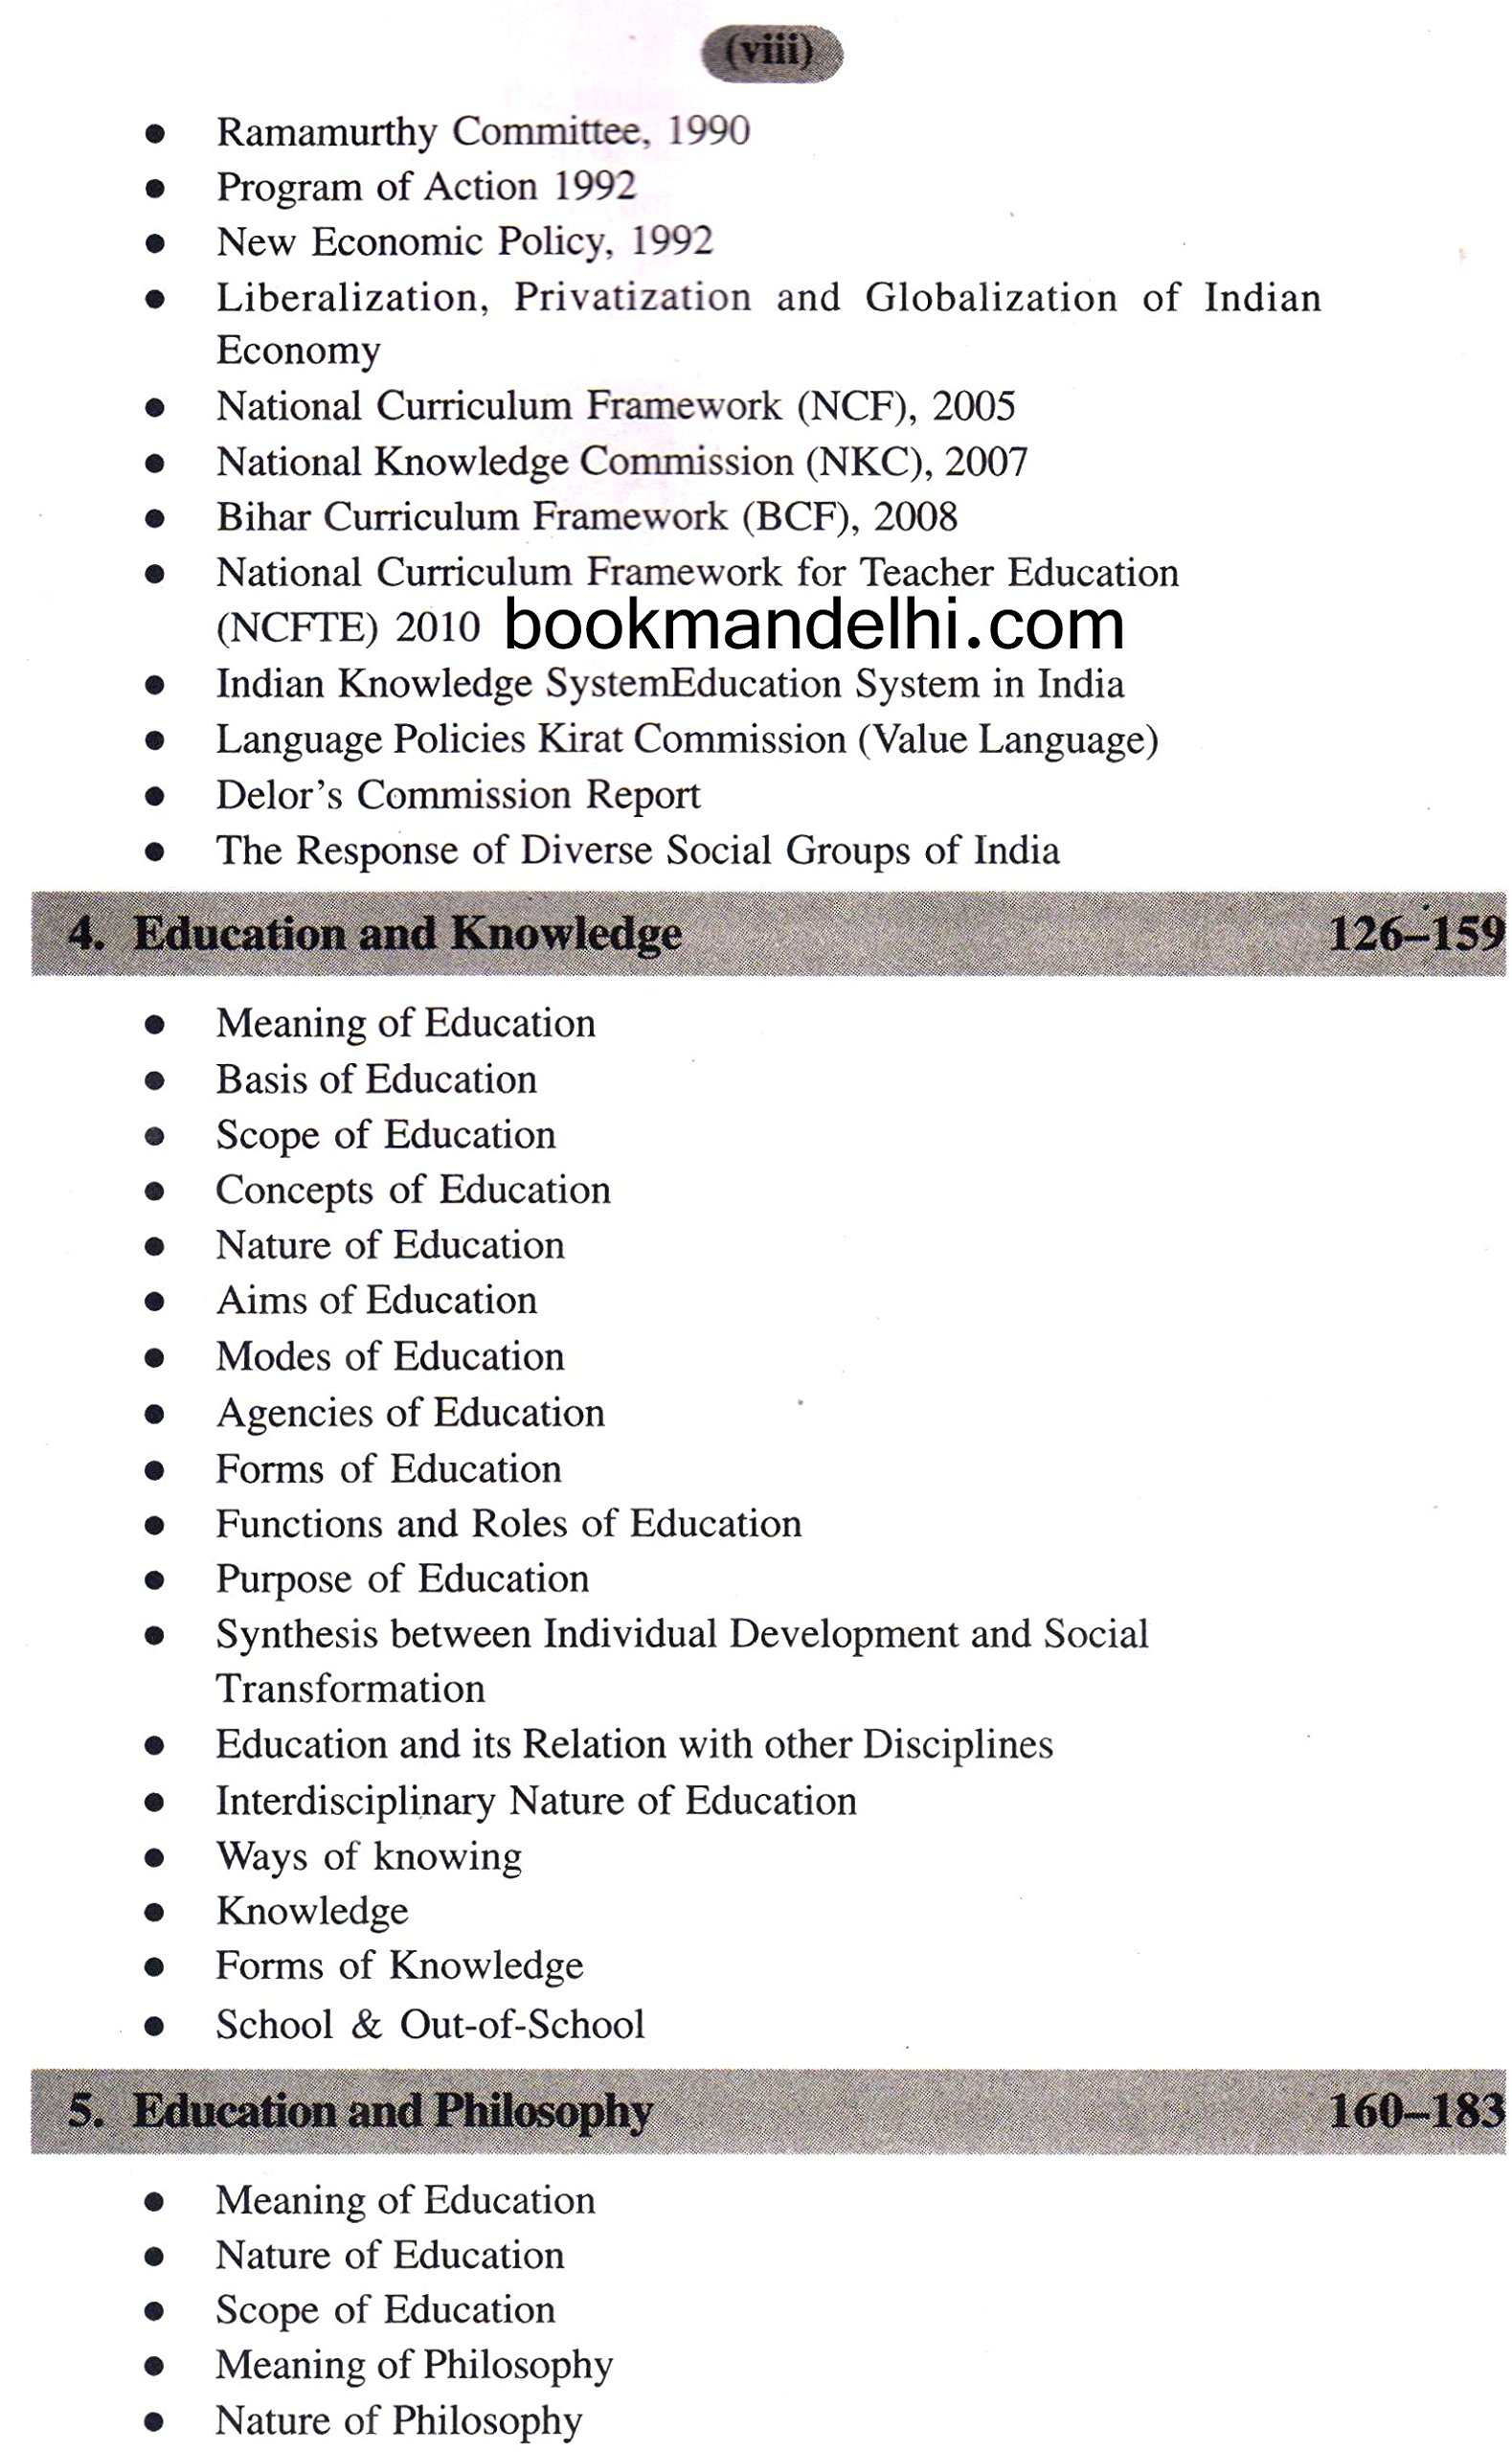 agencies of education in india